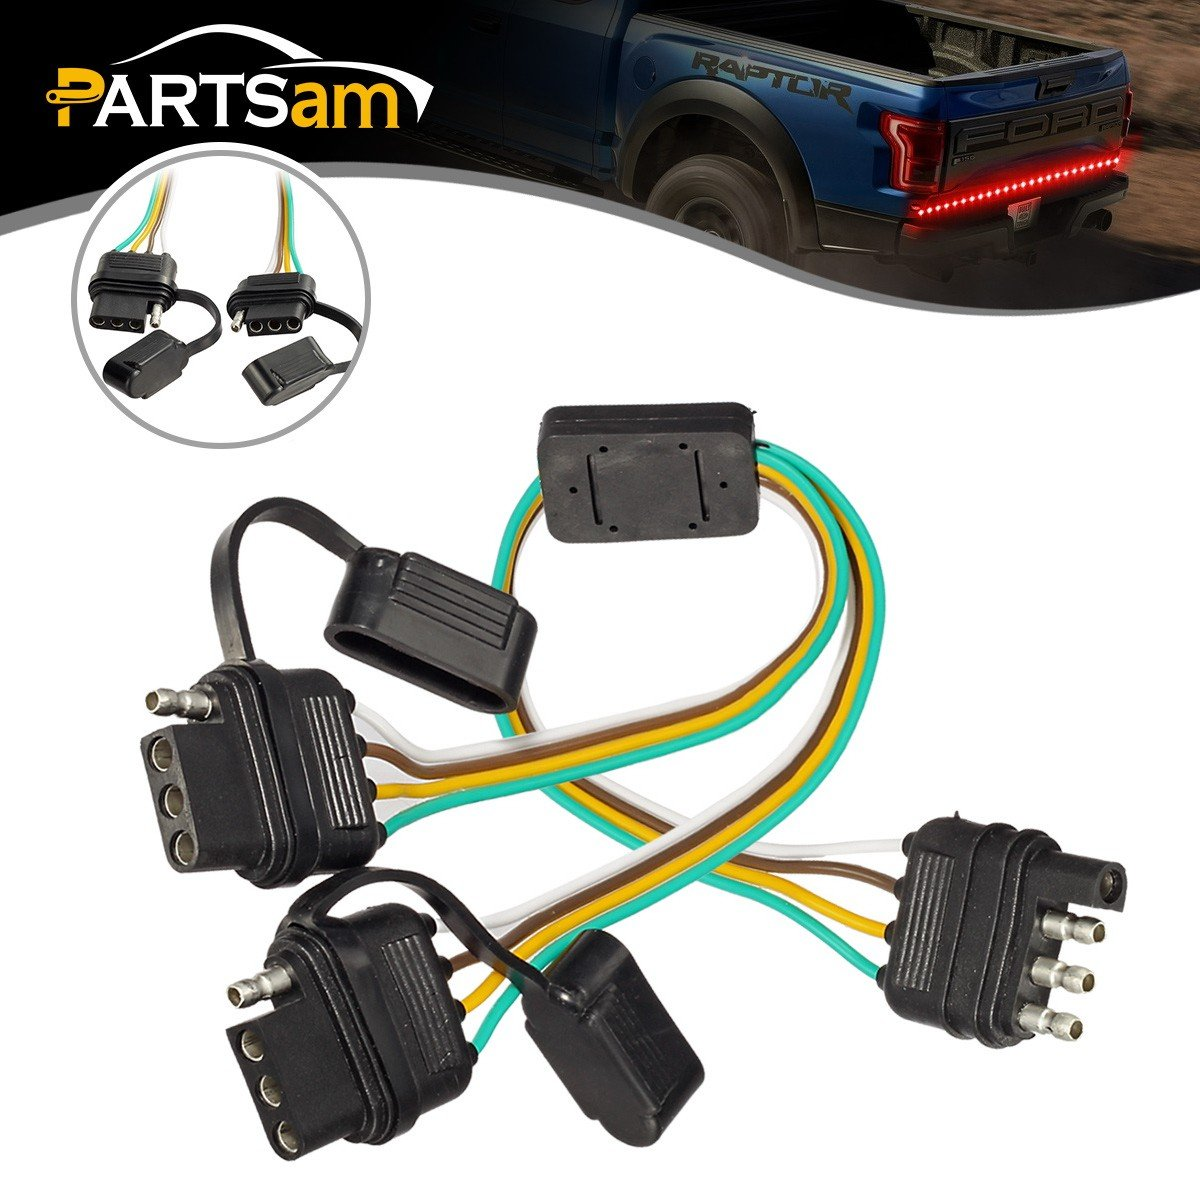 Cheap Trailer Wiring Harness Find Deals On A Plug Get Quotations Partsam 4 Way Flat Y Splitter Light Adapters Led Strip Brake Turn